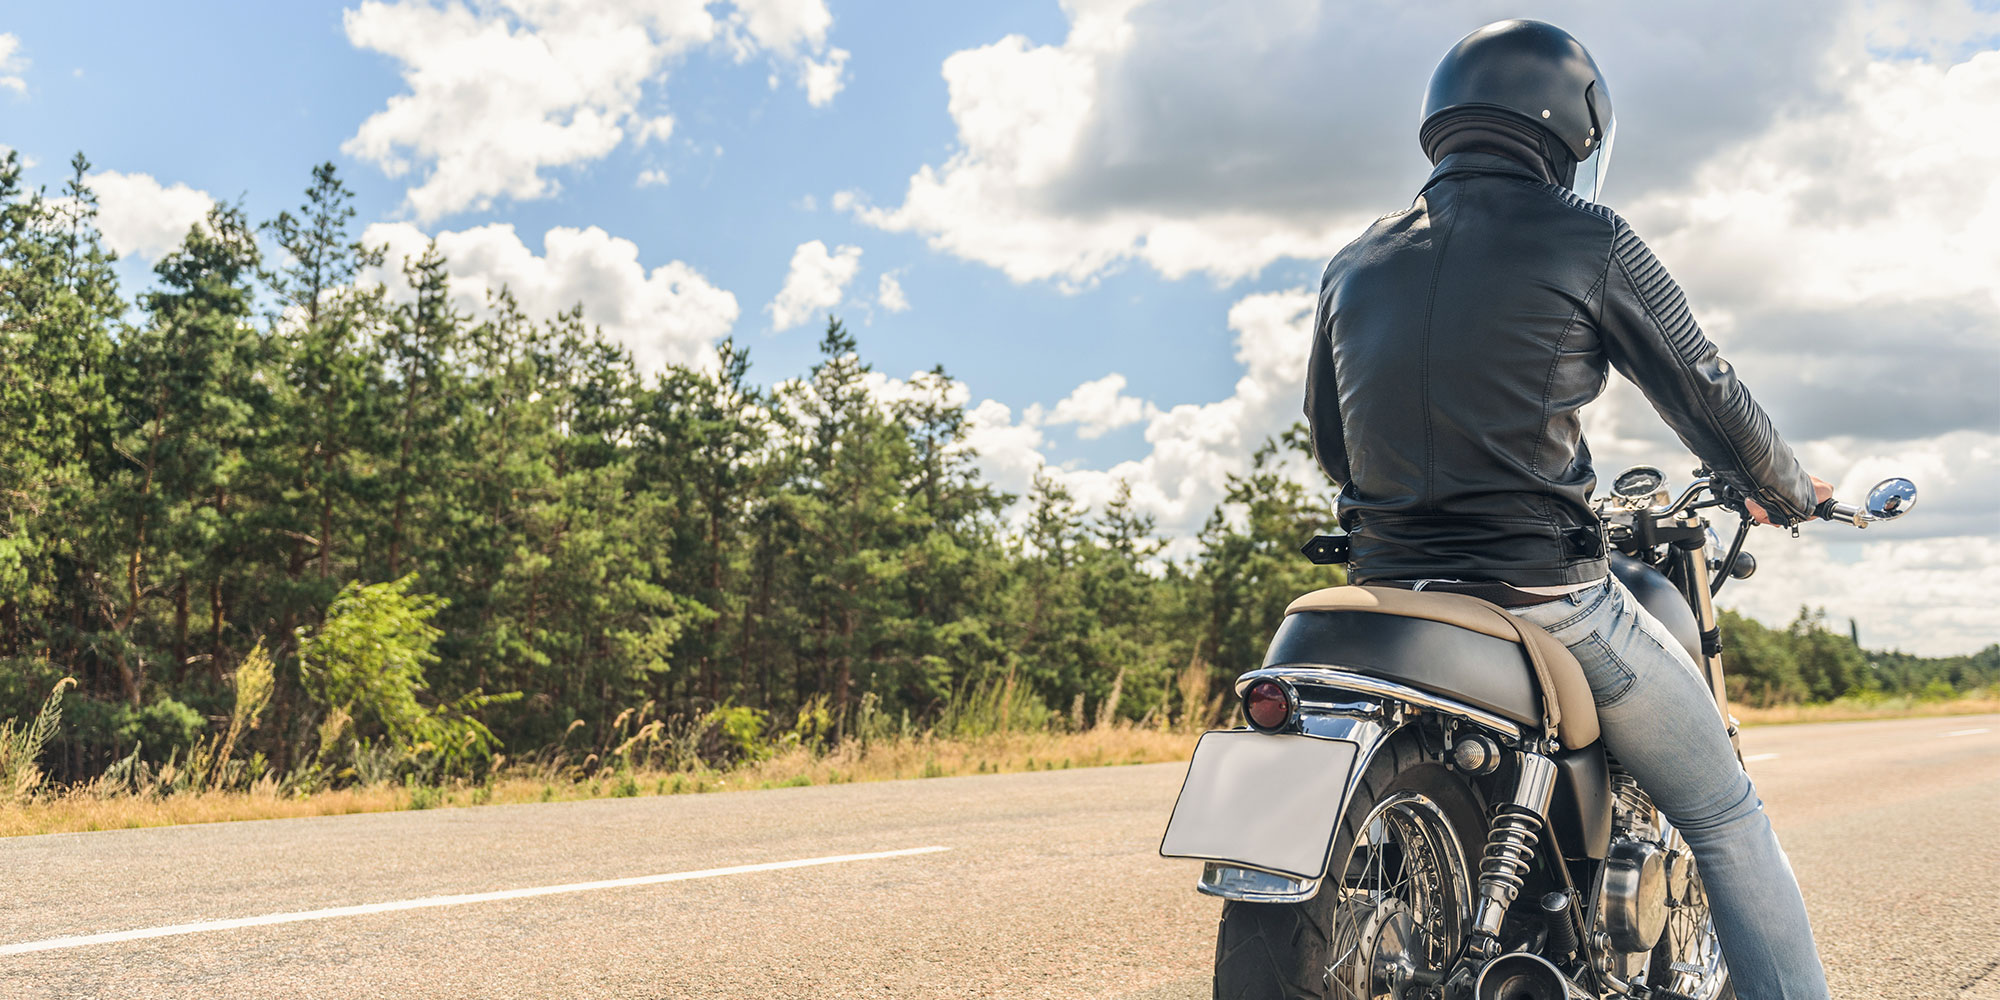 man on cross country motorcycle trip